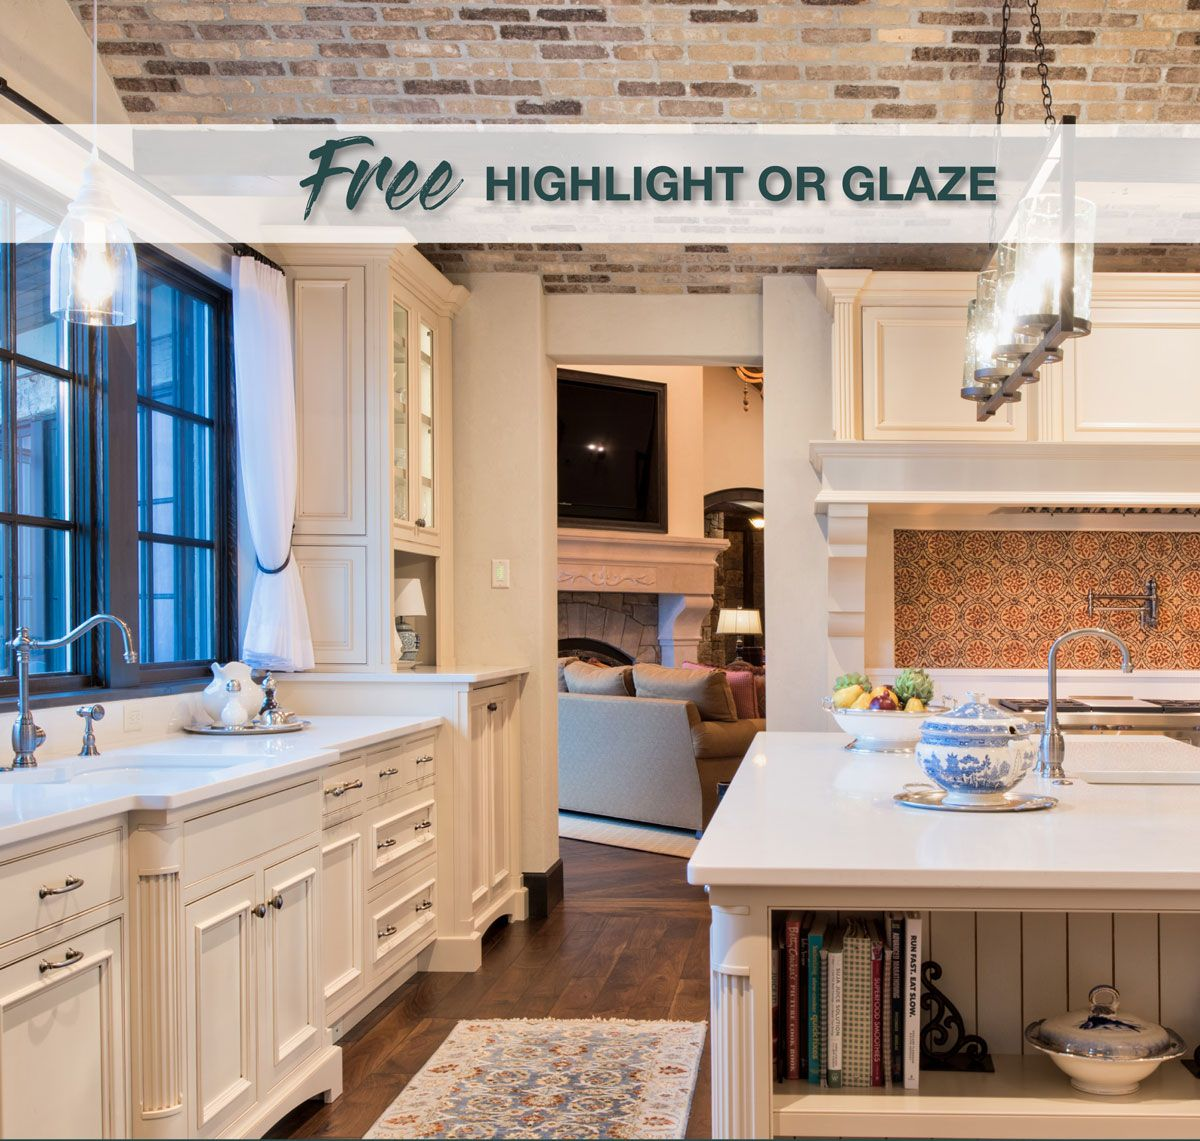 Crystal Is Offering An Amazing Deal On Cabinets For Your Kitchen Or Bath Free Glaze Or Highlight On All K Custom Kitchens Design Kitchen And Bath House Design